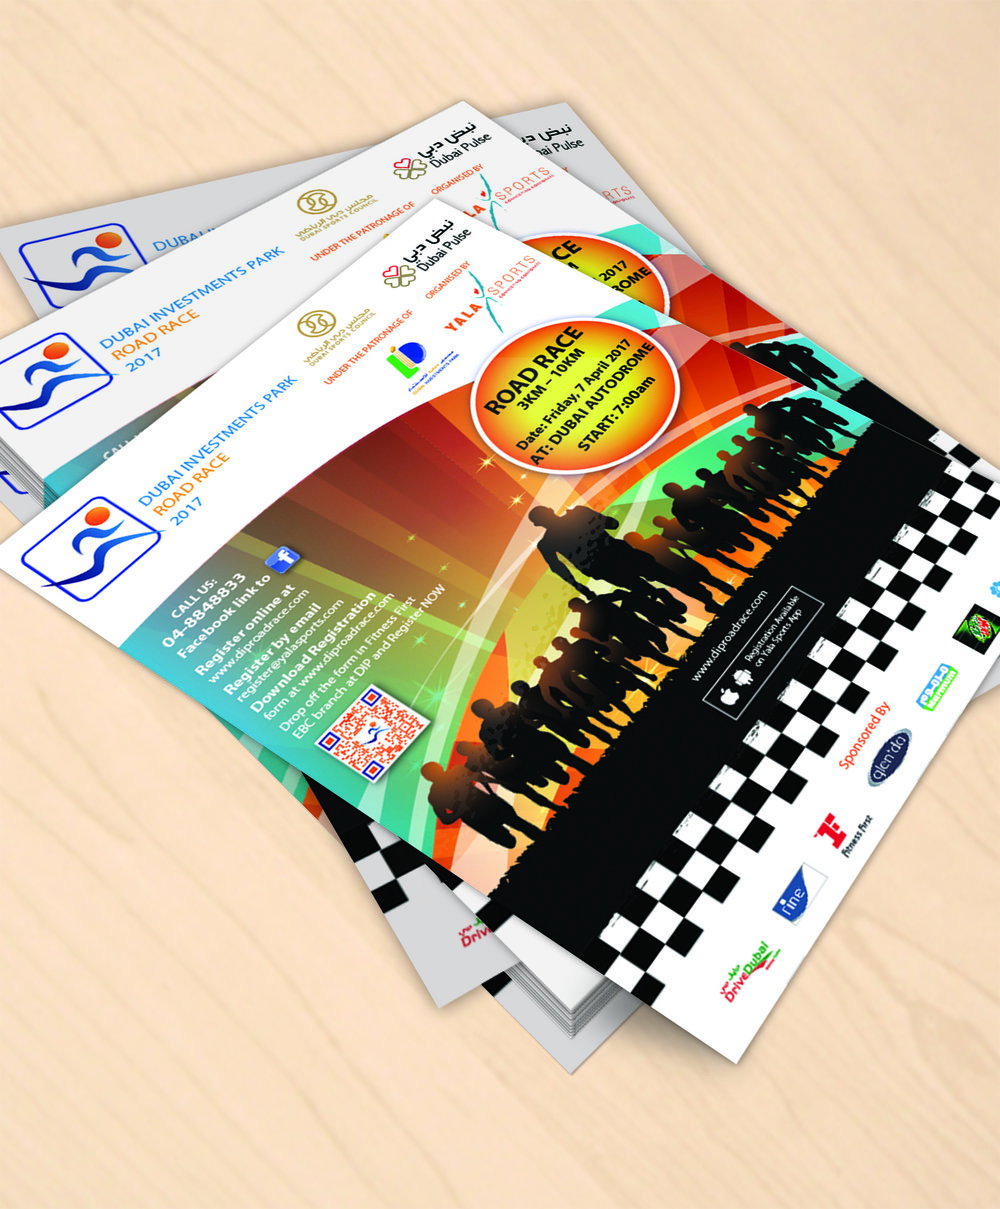 DIP Road Race 2017 Flyer - Client: Yala SportsDescription: Design Flyer for the promotion of the Dubai Investments Park 2017 Road Race. Client wanted something bright and colourful which included both sponsor and organizer logos. Year: 2017